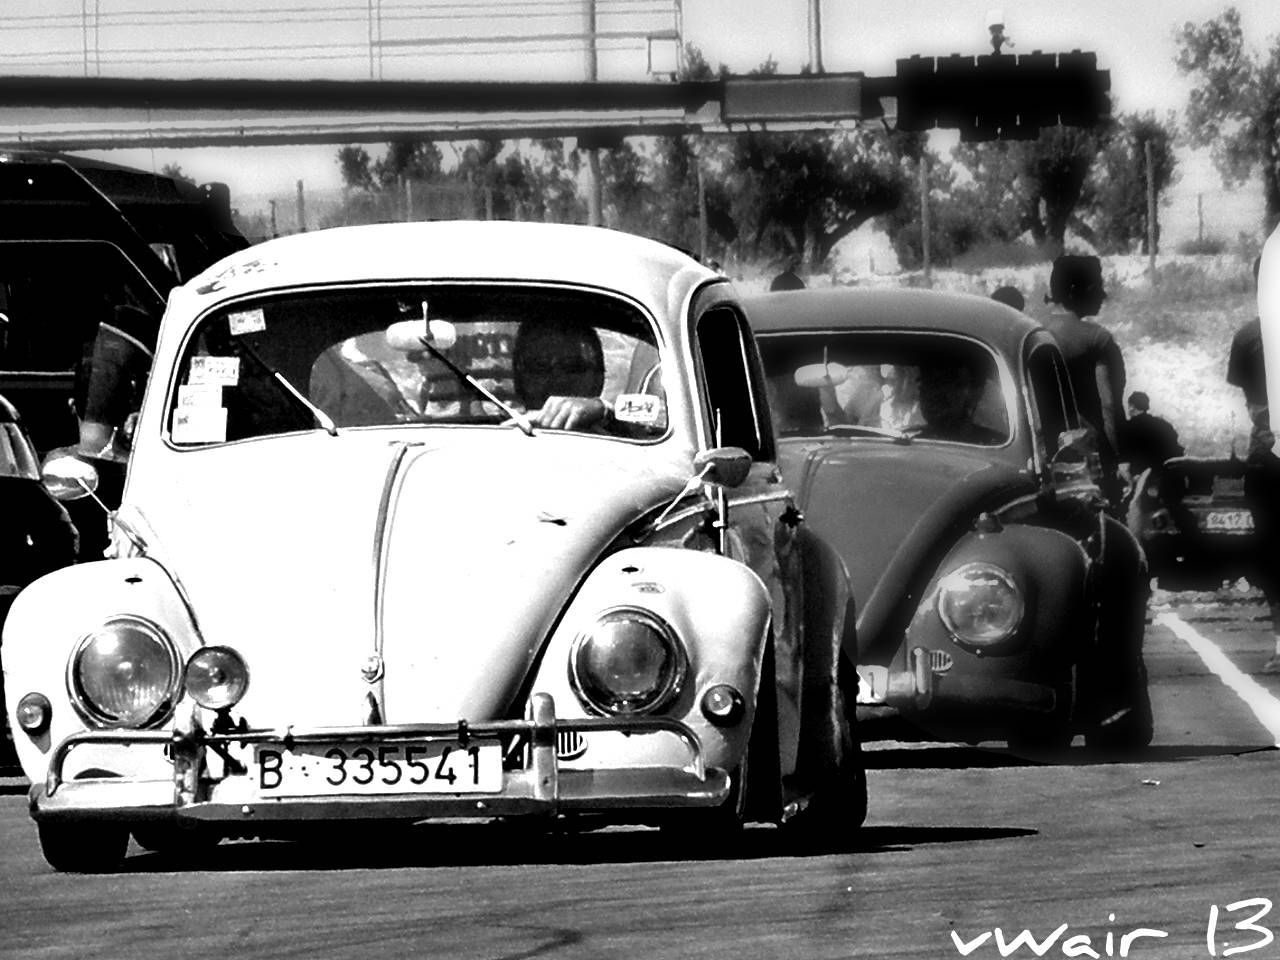 Slammed Vw Beetle Old Bugs Pinterest Beetle Vw Beetles And